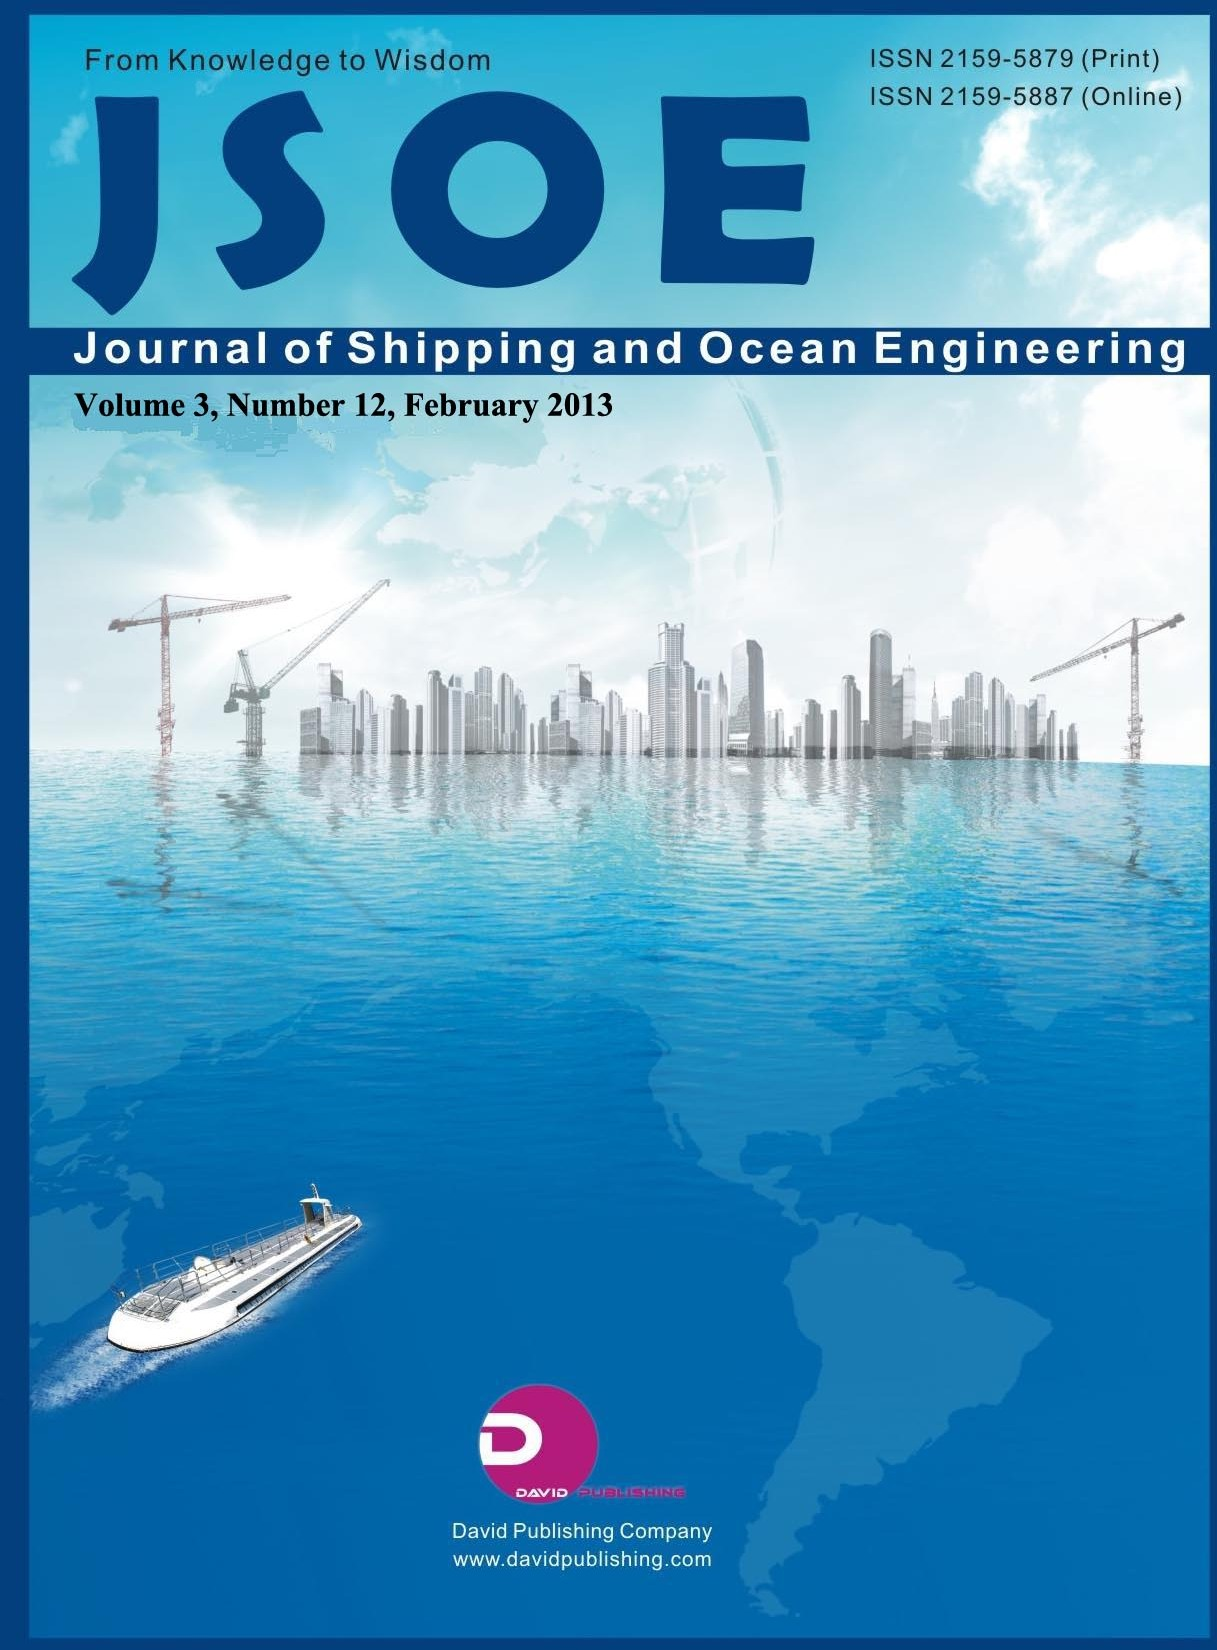 Journal of Shipping and Ocean Engineering